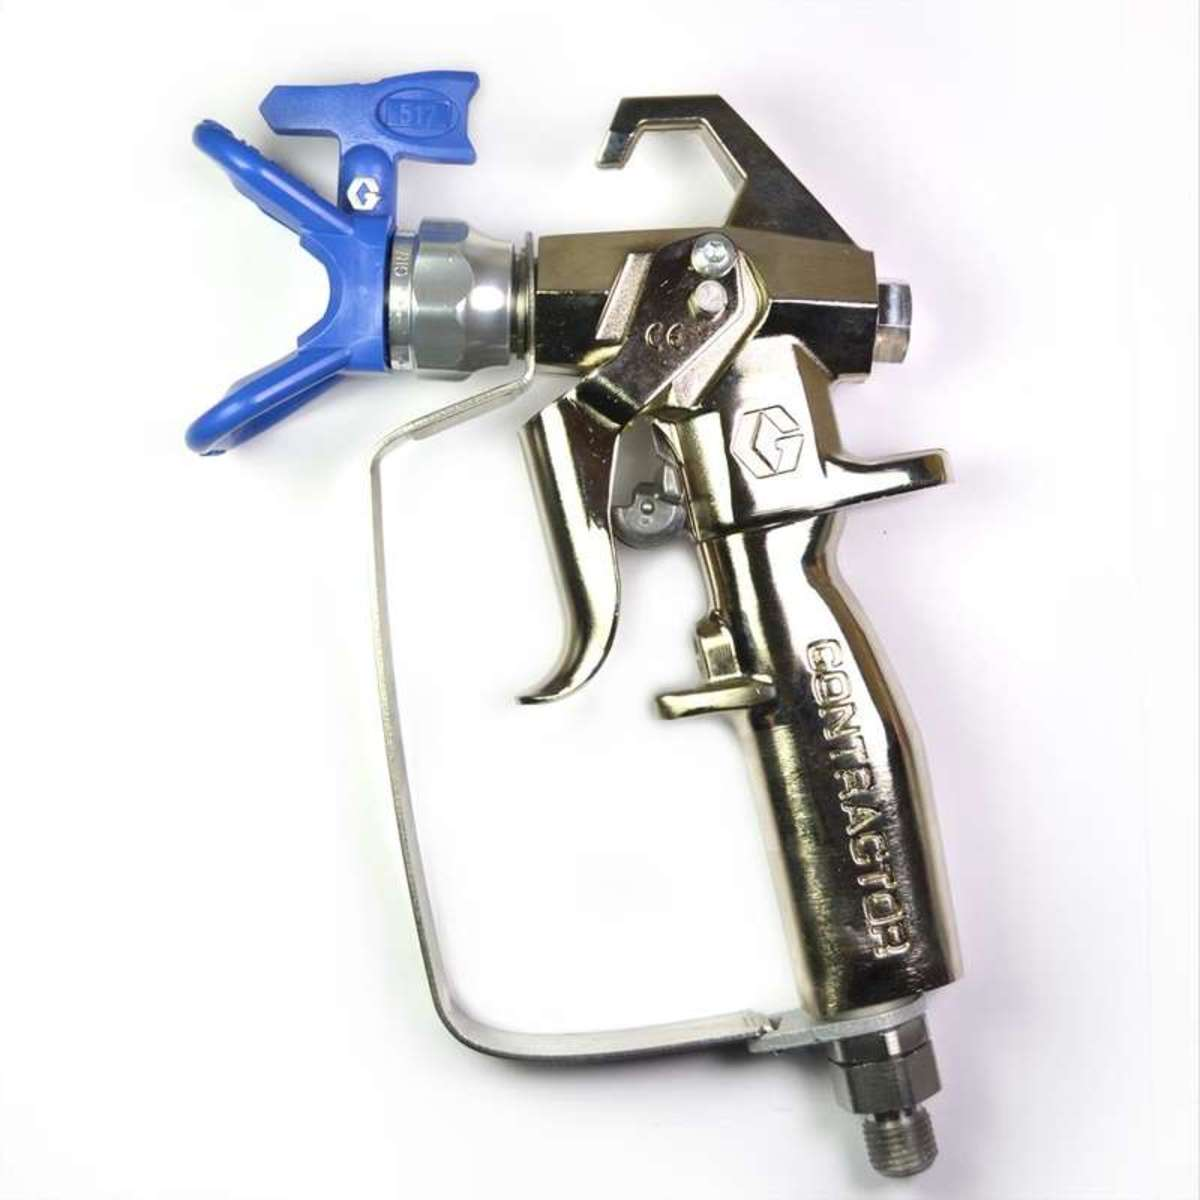 My Review of the Graco Contractor Spray Gun (2-Finger Trigger)